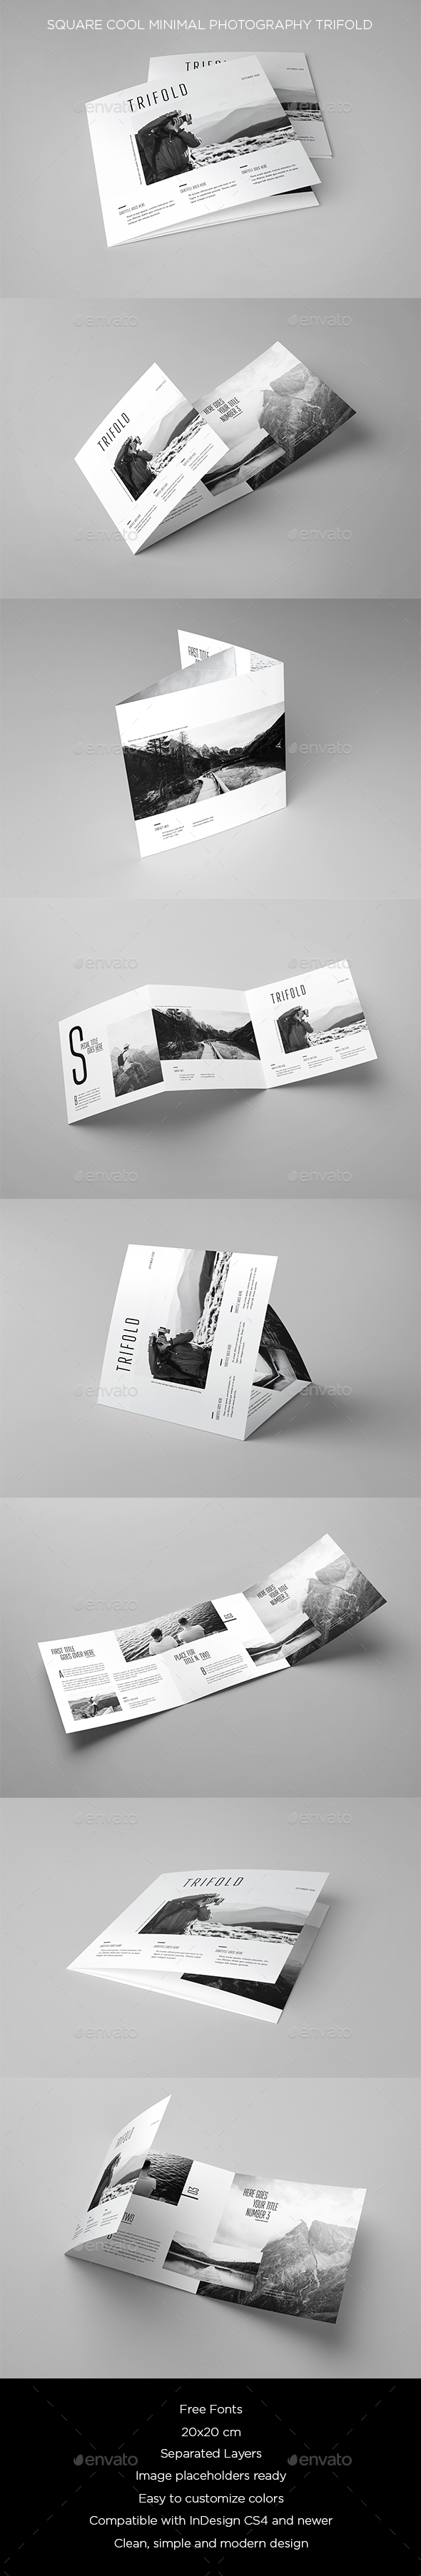 Square Cool Minimal Photography Trifold - Brochures Print Templates